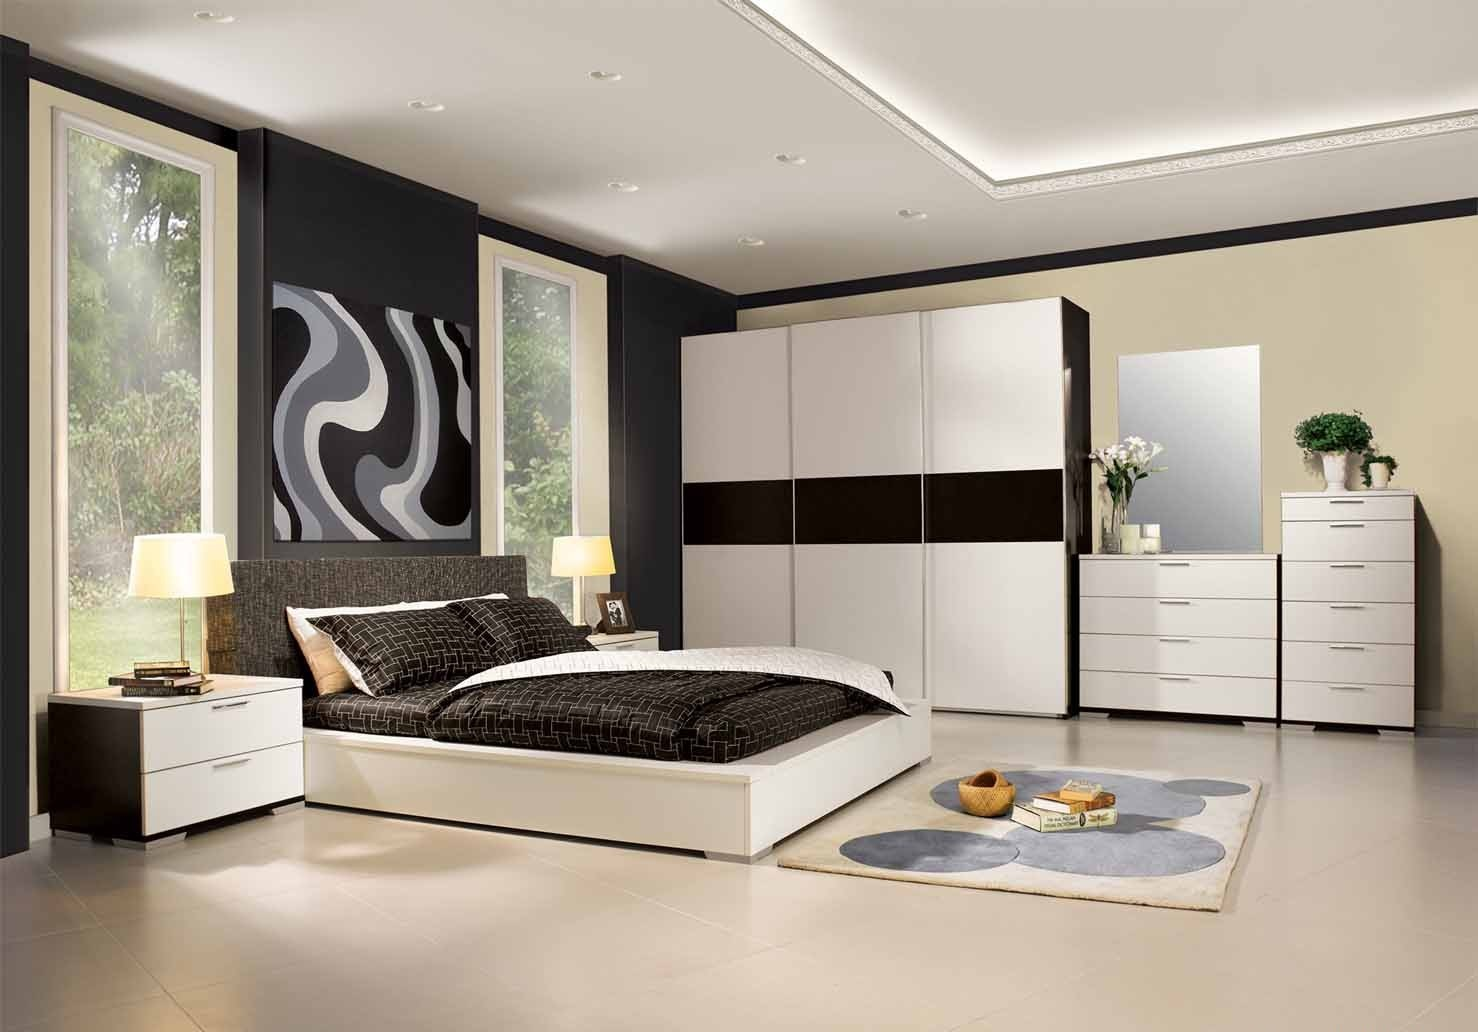 HOW TO DECORATE THE BEDROOM AT CONTEMPORARY STYLE WITH HOME ...